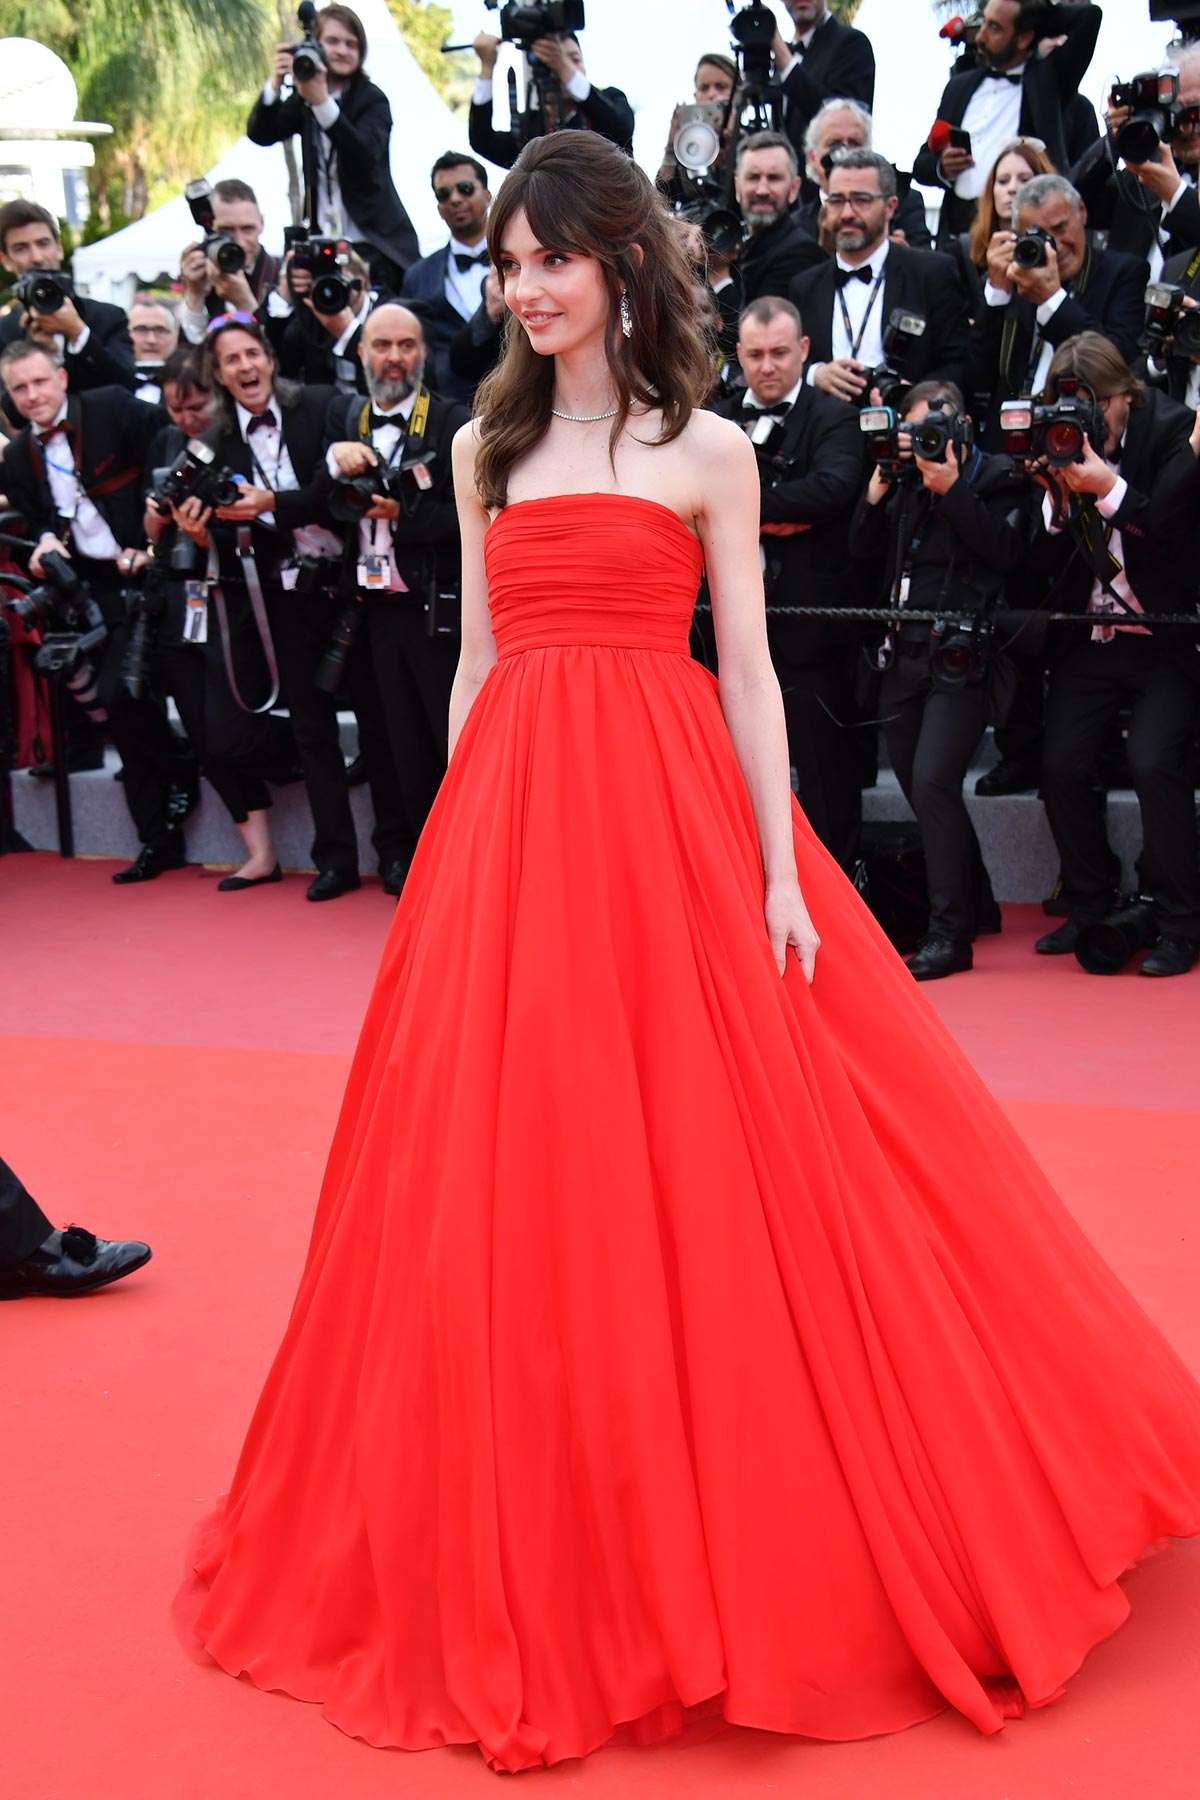 Cannes 2018 - Red carpet - Annabelle Belmondo - Hair and makeup Massimo Serini